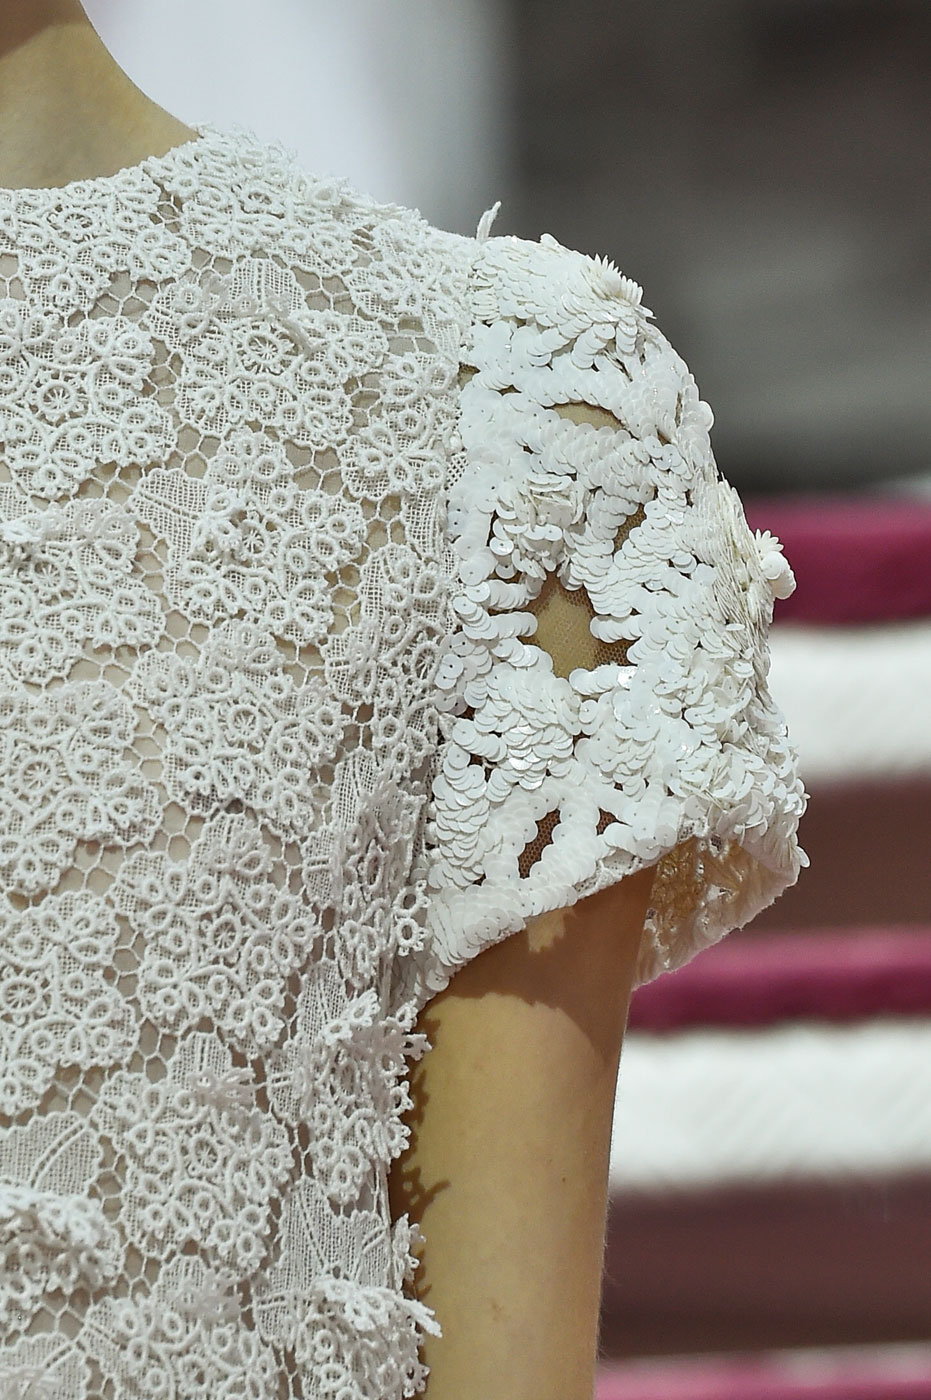 Christian-Dior-fashion-runway-show-close-ups-haute-couture-paris-spring-summer-2015-the-impression-135